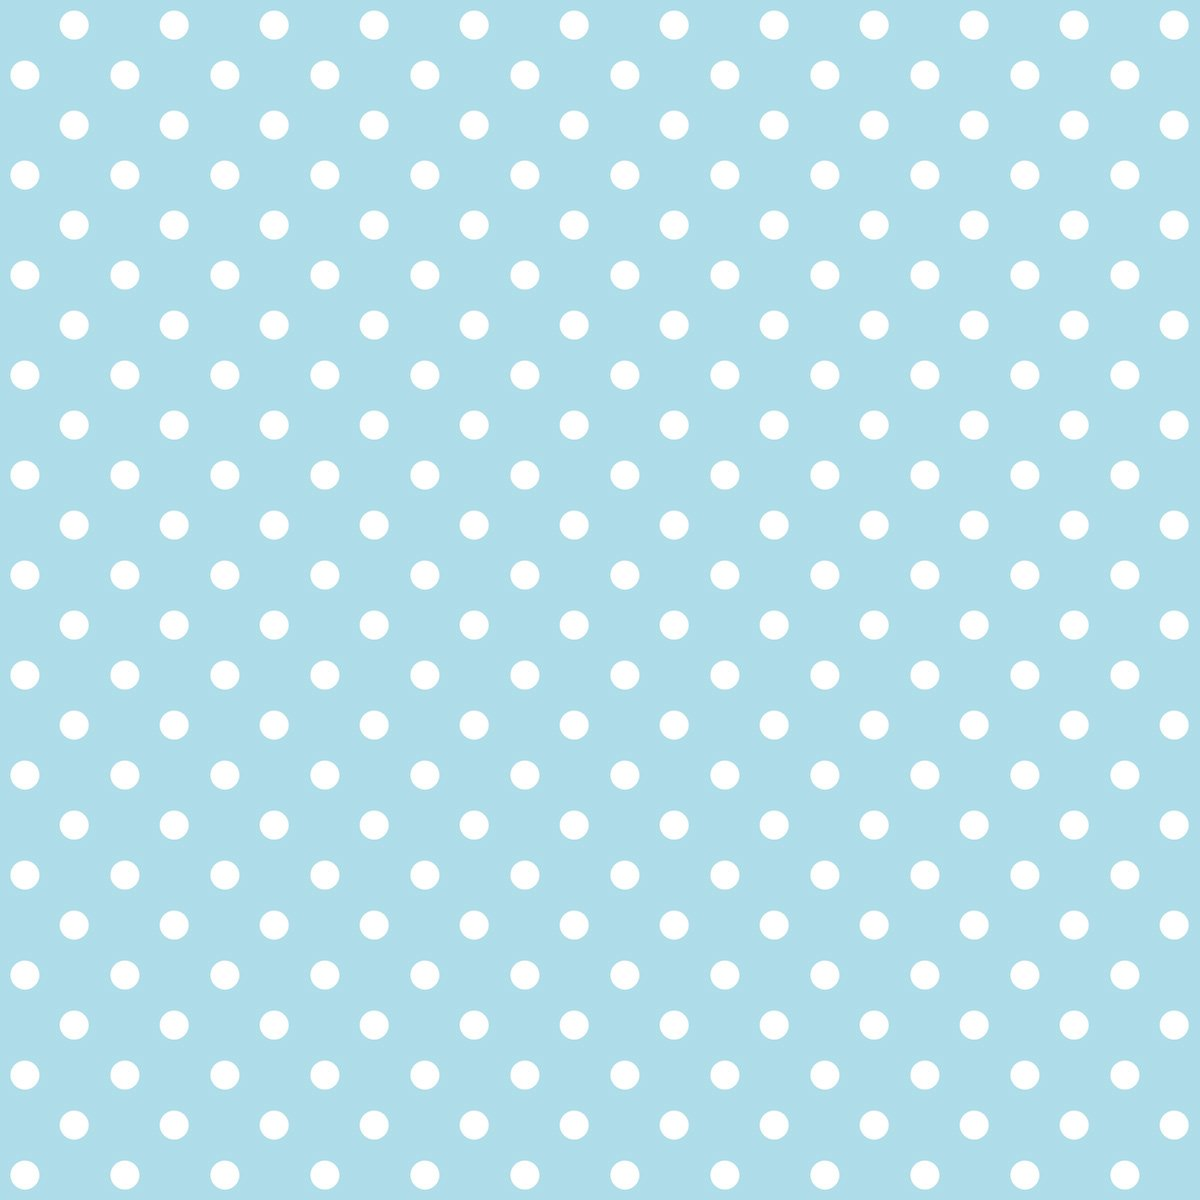 blue white patterned polka dots powerpoint background #3443